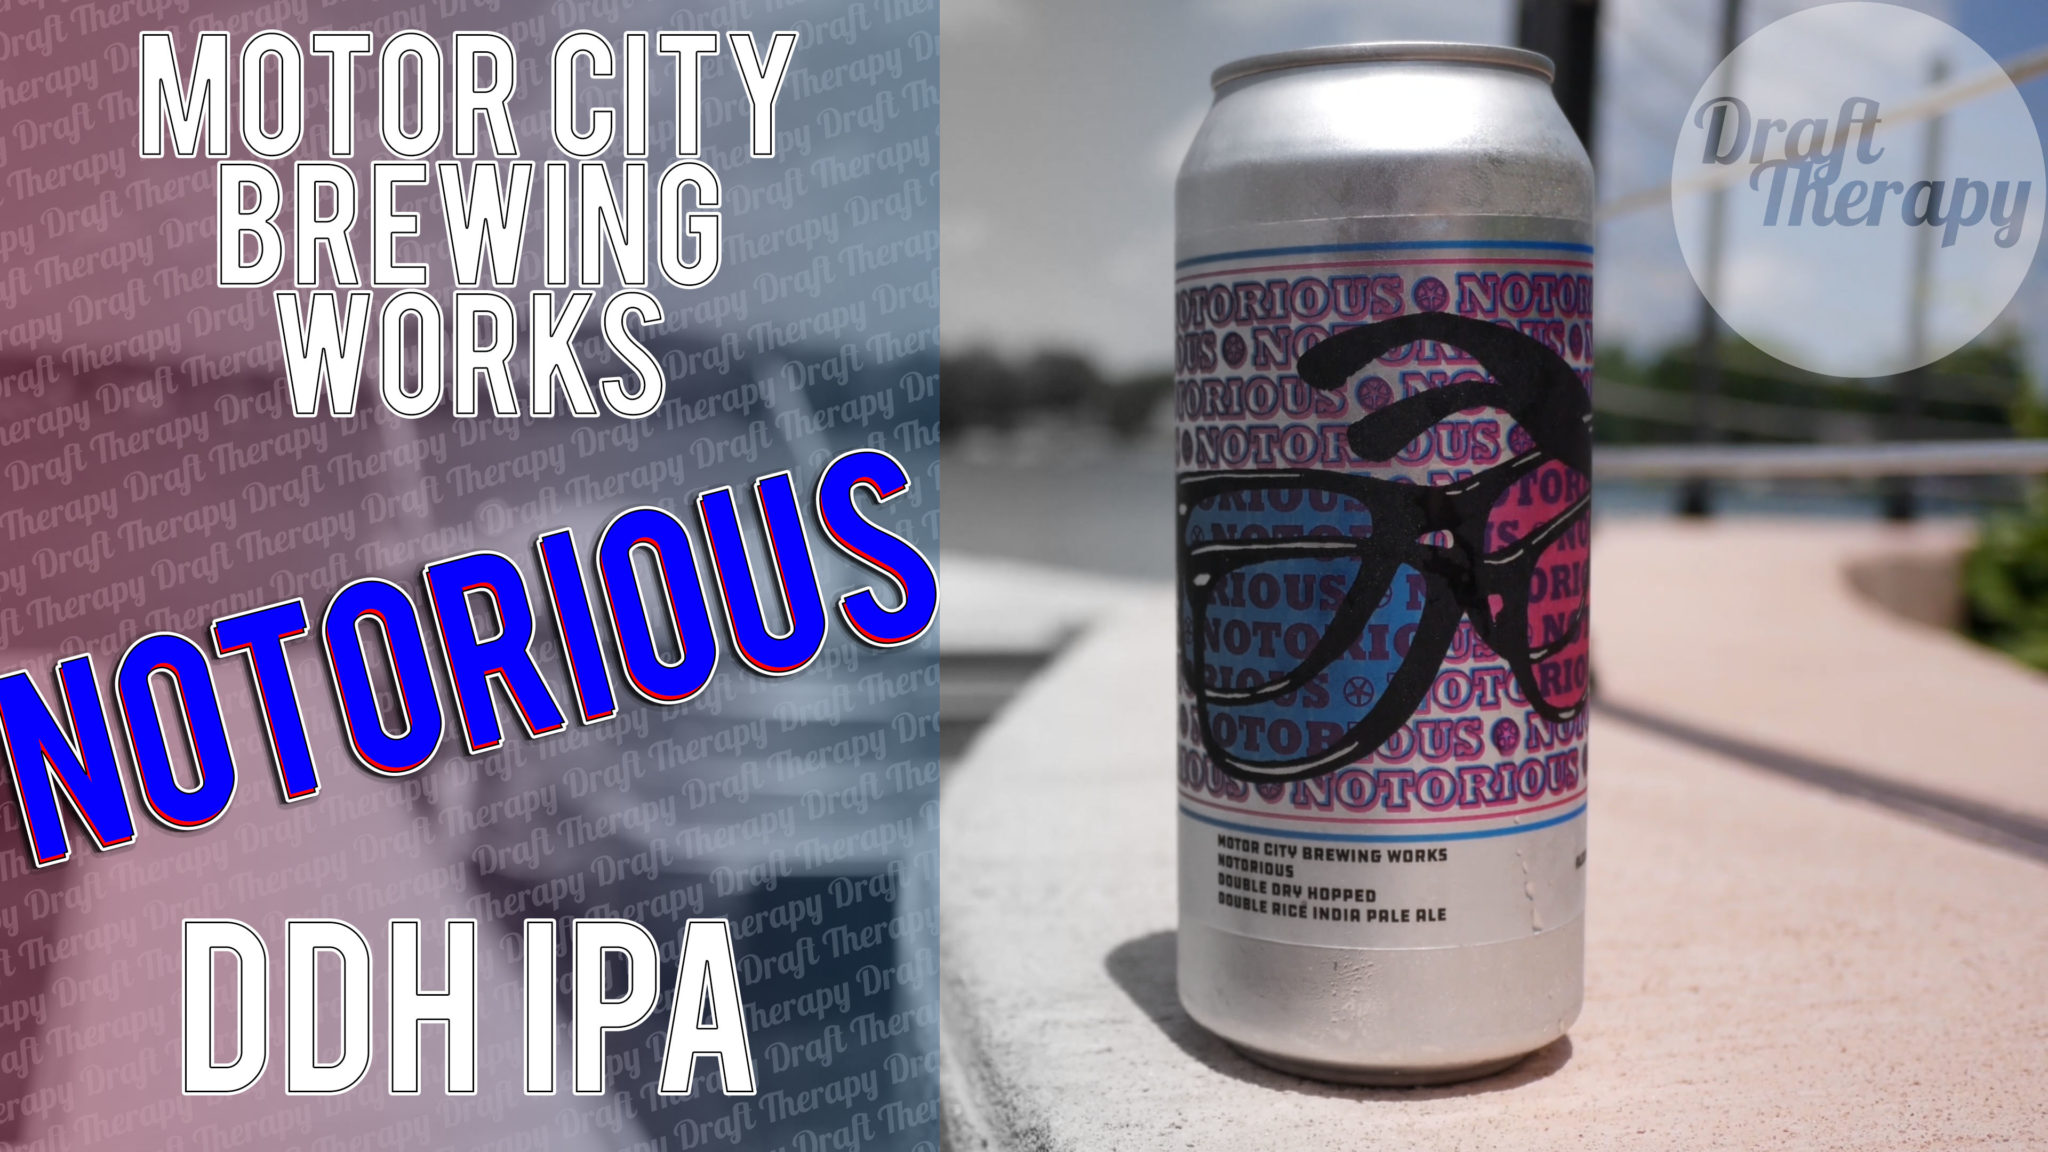 Motor City Brewing Works – Notorious DDH Double Rice IPA